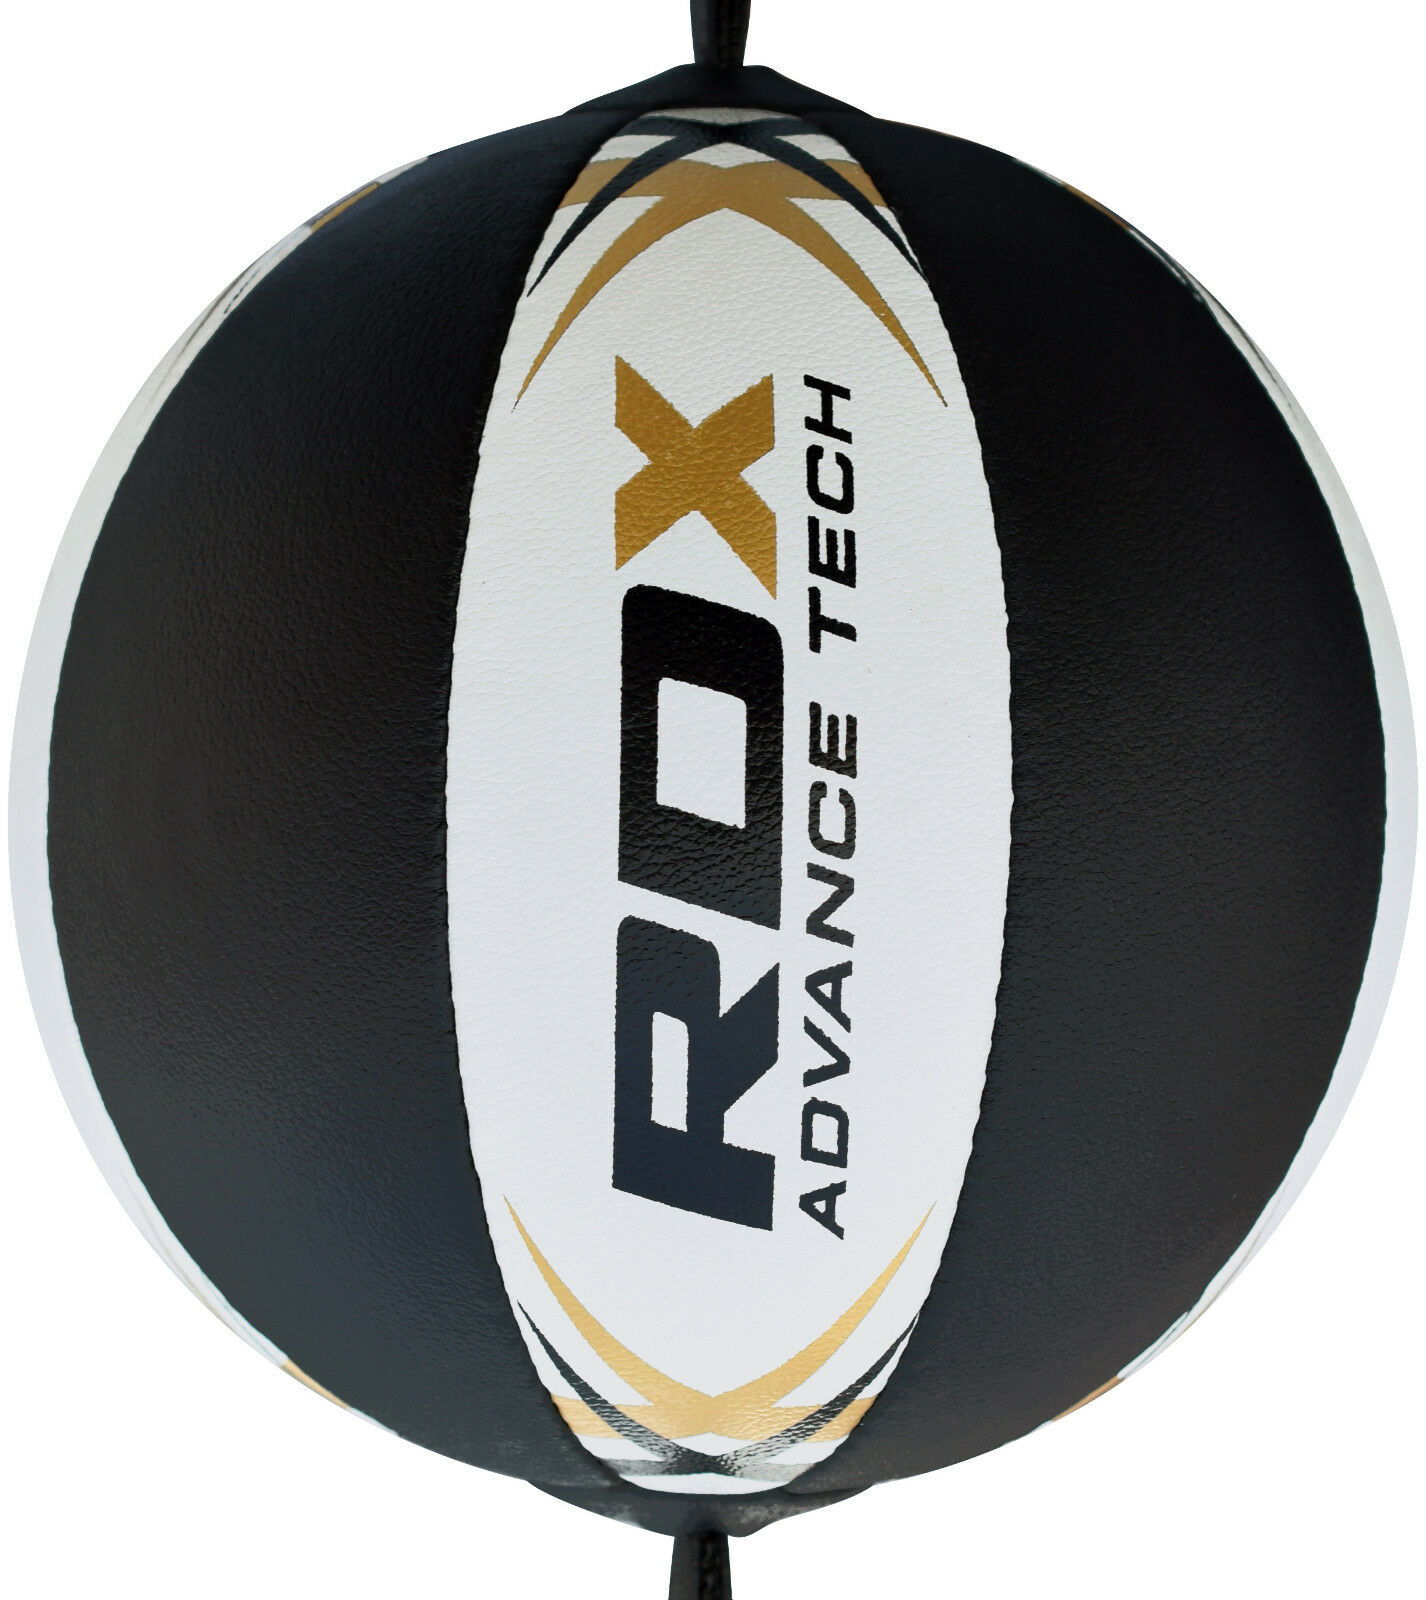 RDX Leder Dodge Double End Dodge Leder Speed Ball MMA Boxing Floor to Ceiling Punch Bag Gi 230a64